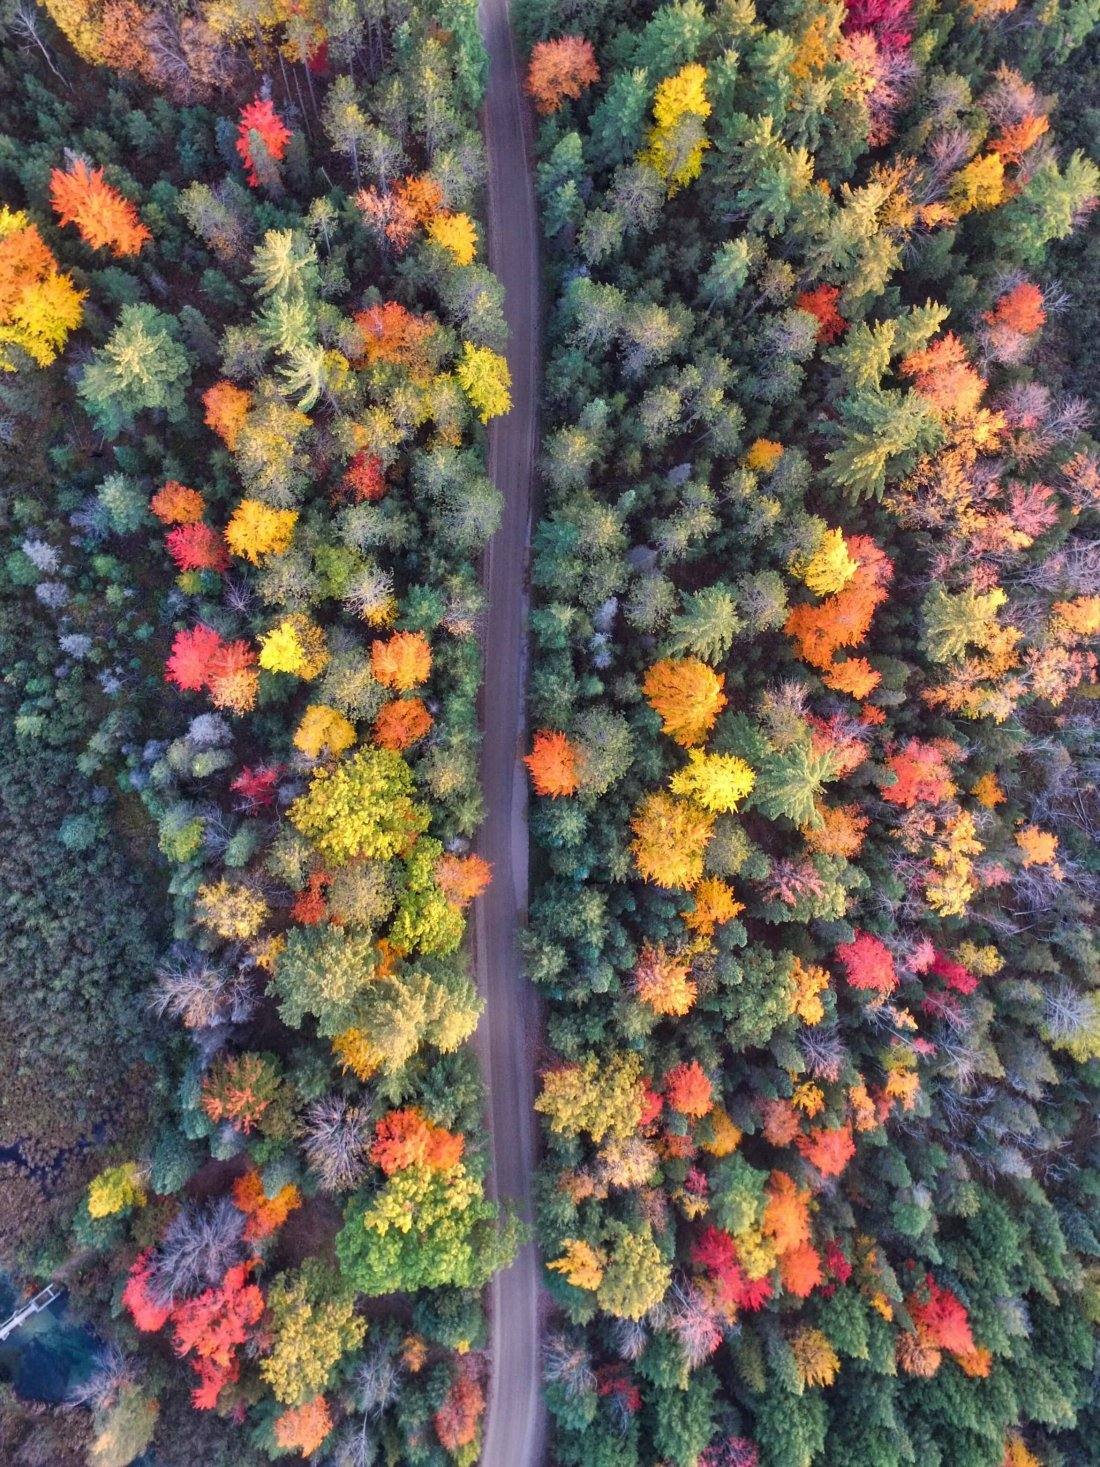 Looking down at a road running through the middle of an autumnal forest - red, yellow and green tree tops